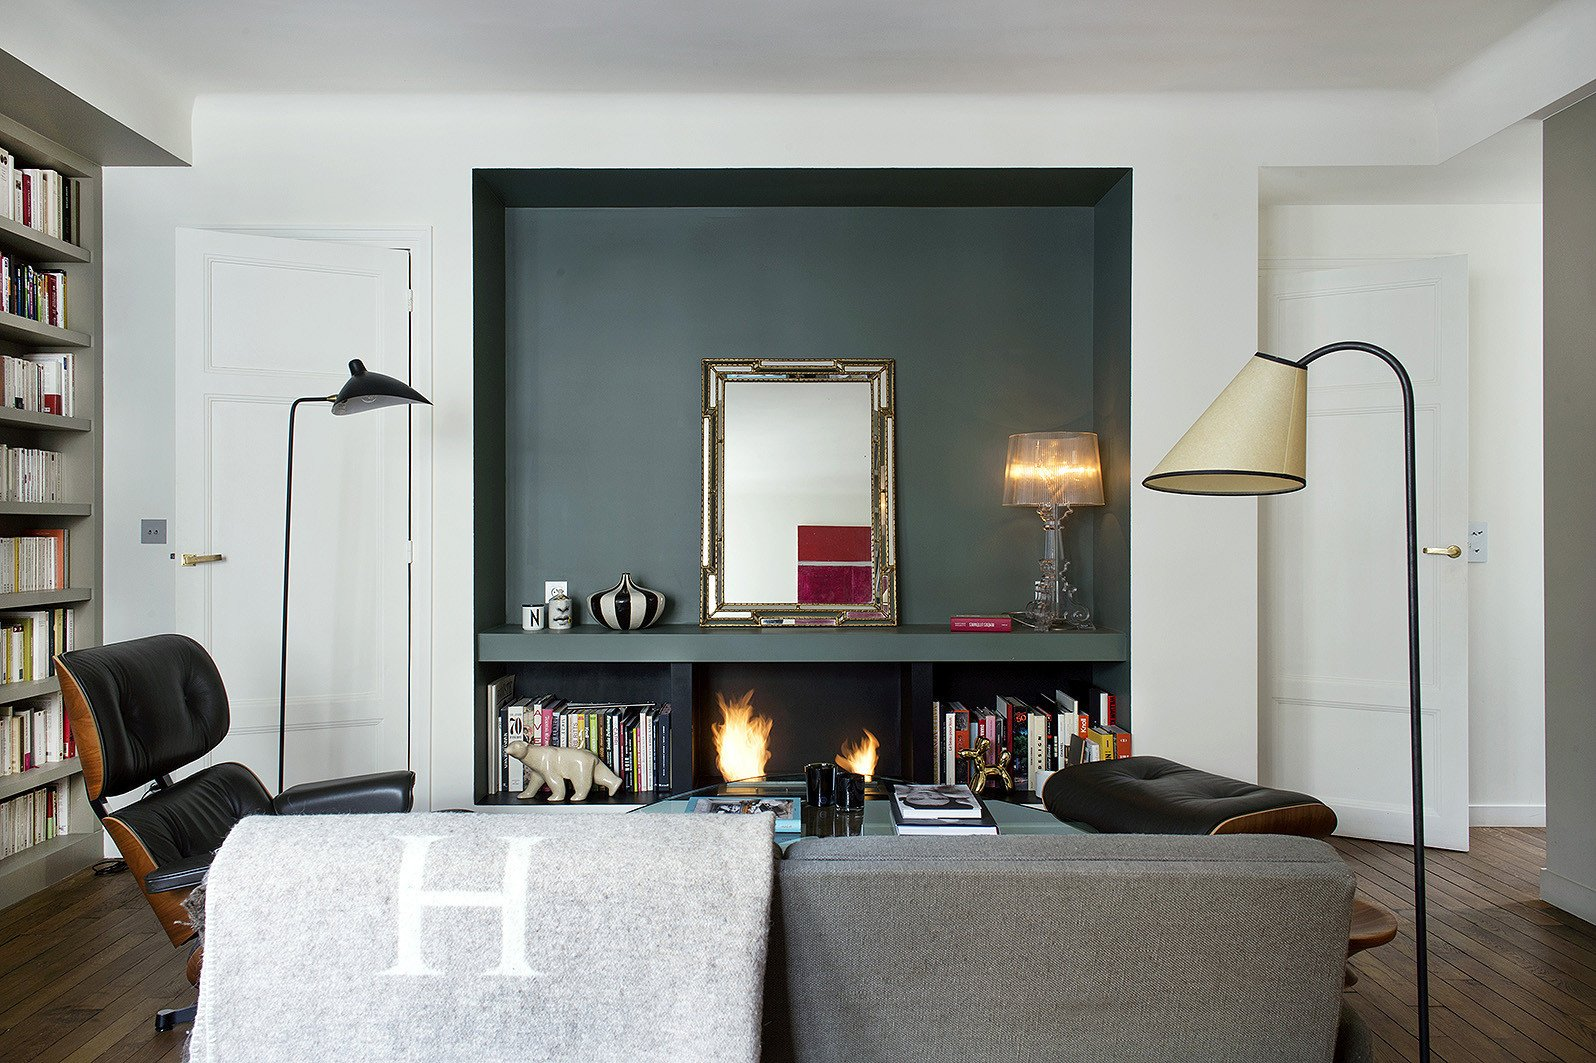 Small Apartment Living Room Decor 9 Small Space Ideas to Steal From A Tiny Paris Apartment